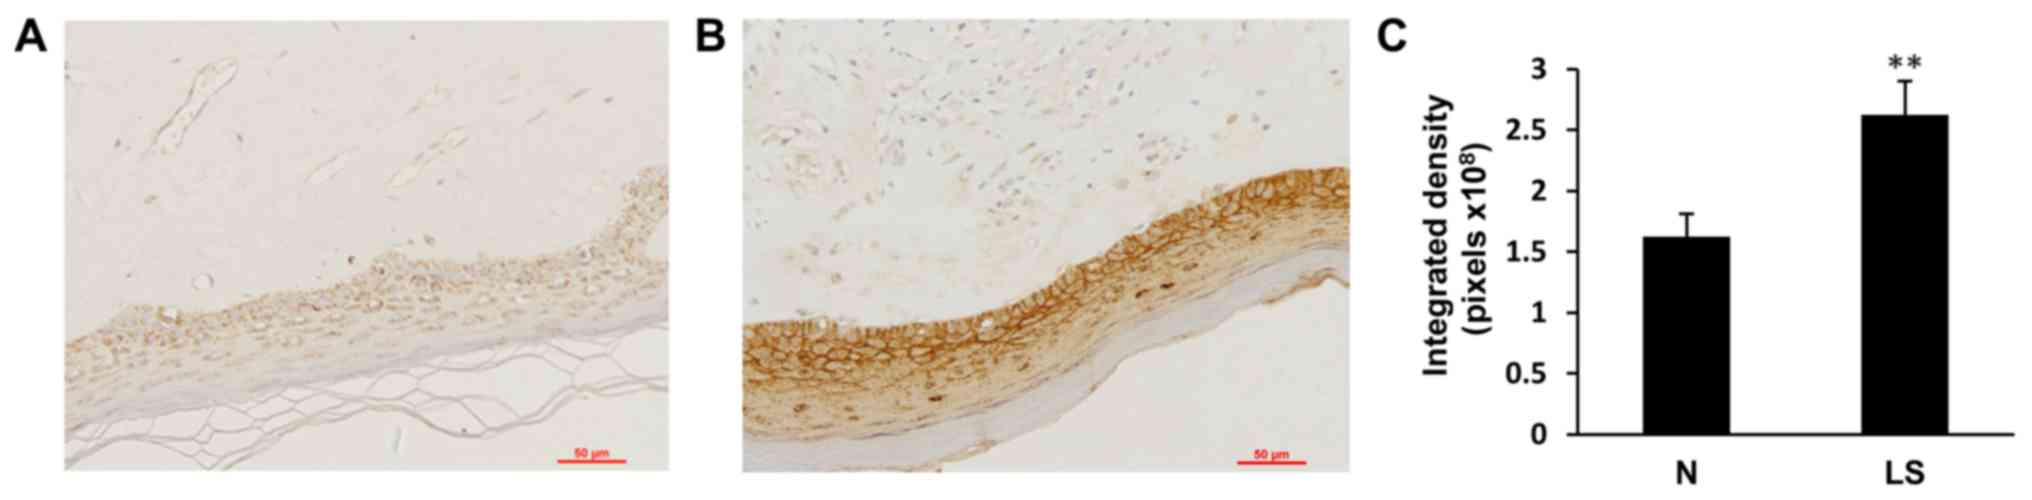 Expression Of Galectin 7 In Vulvar Lichen Sclerosus And Its Effect On Dermal Fibroblasts